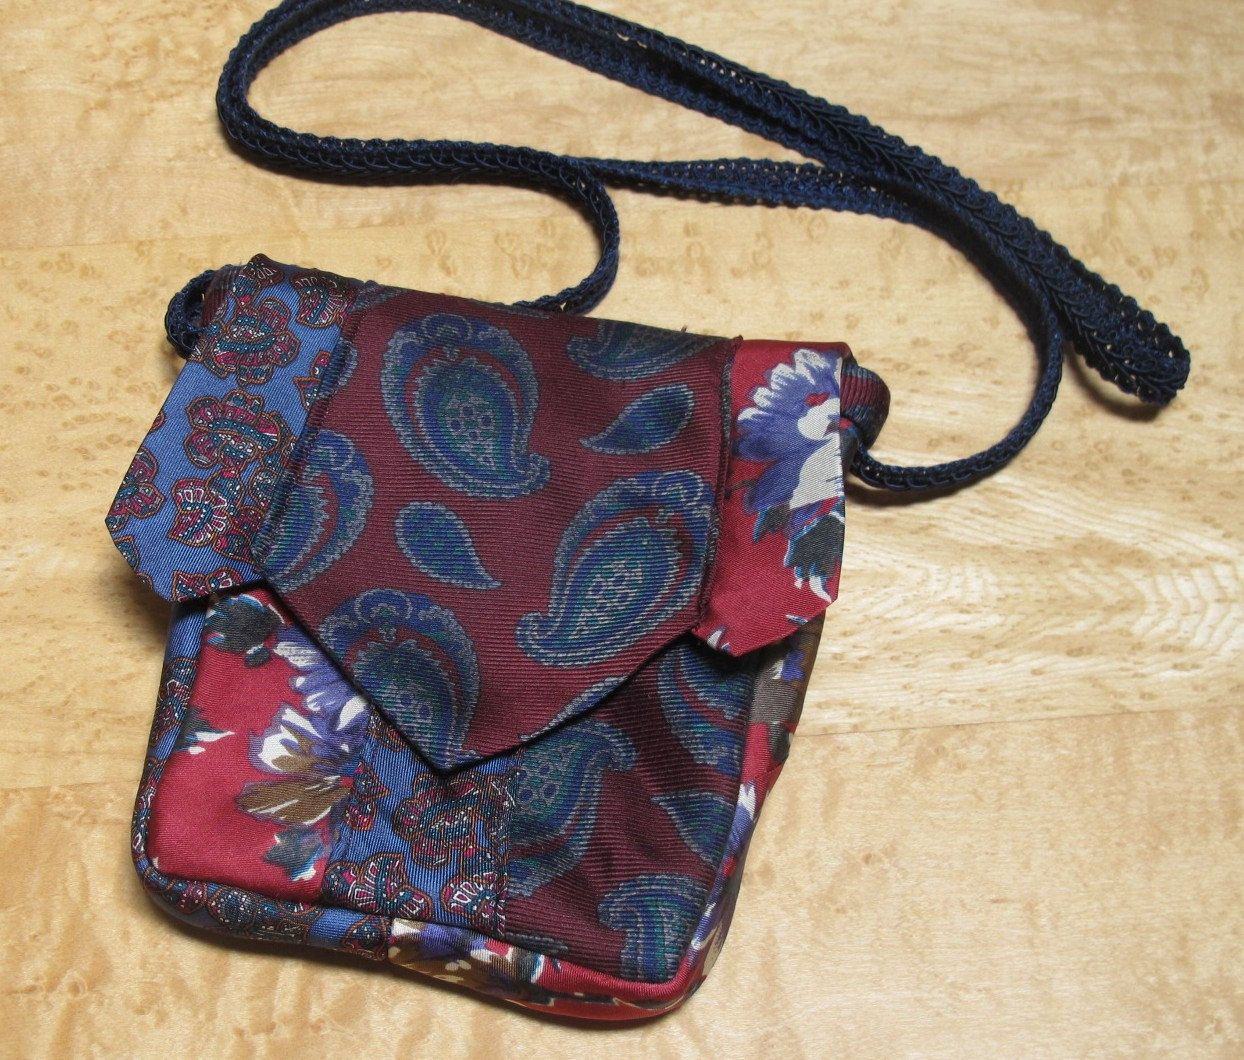 Small Shoulder Bag in Made From Recycled Silk Ties in Blues & Burgundy by LulusCreations1 on Etsy